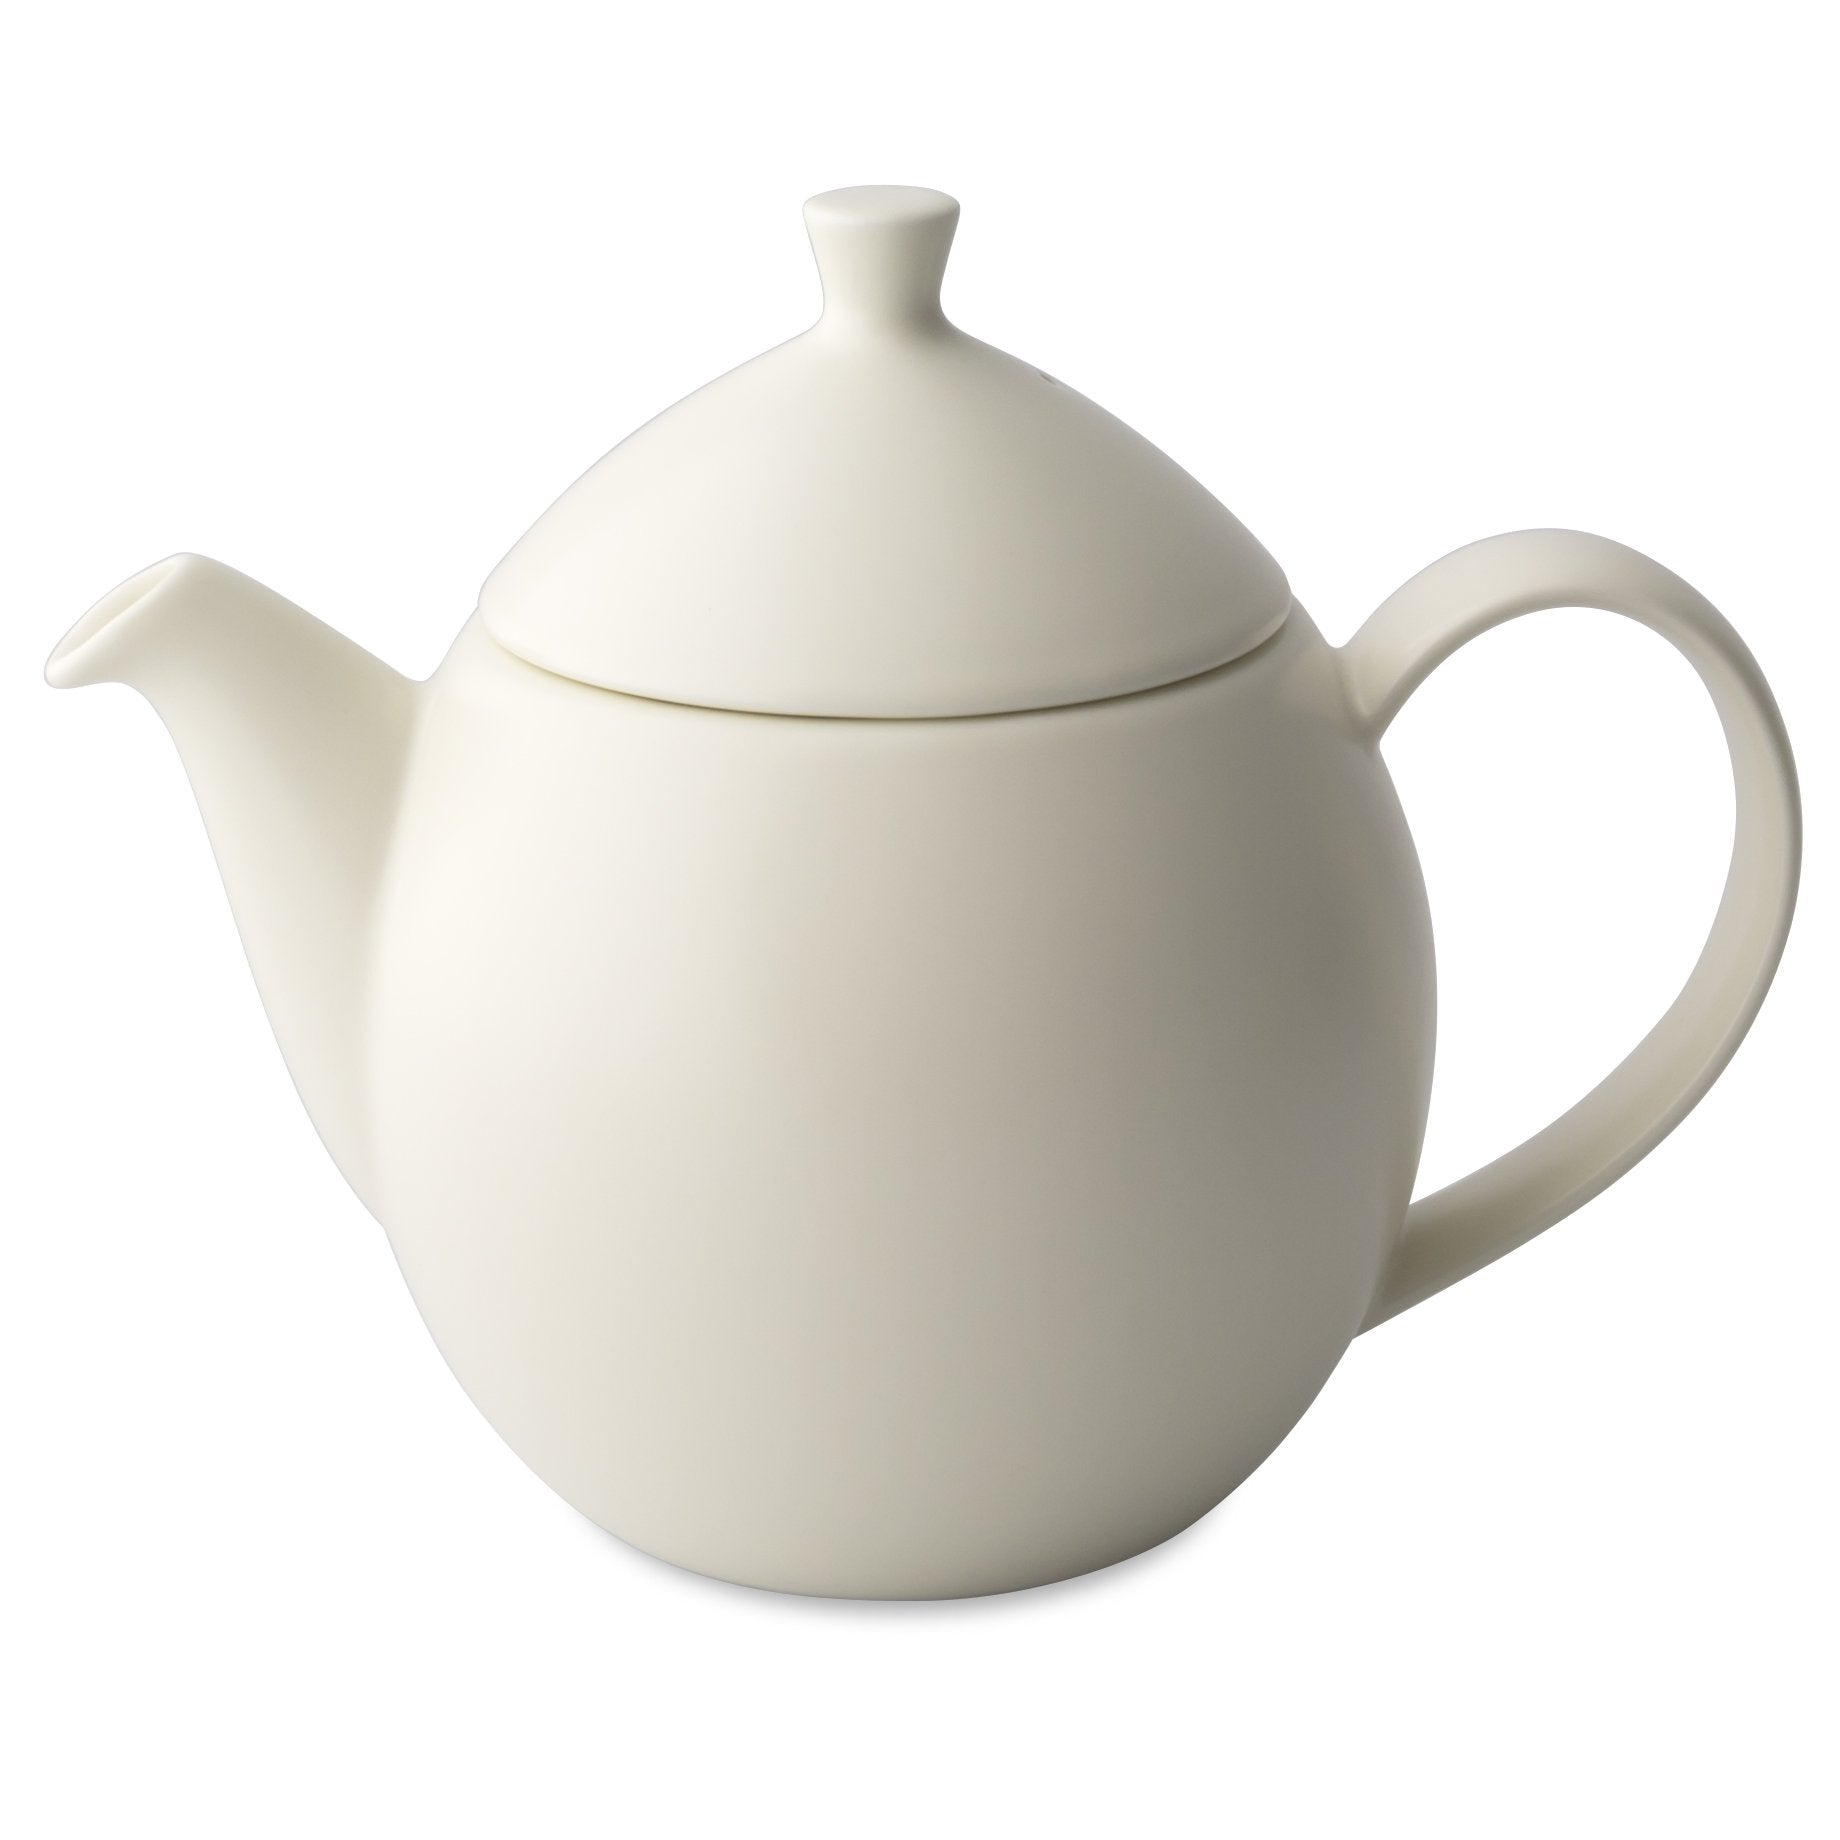 TeaLula 32 oz natural cotton white colored satin finish curve Dew Teapot with large thin curve handle and detachable tea pot lid